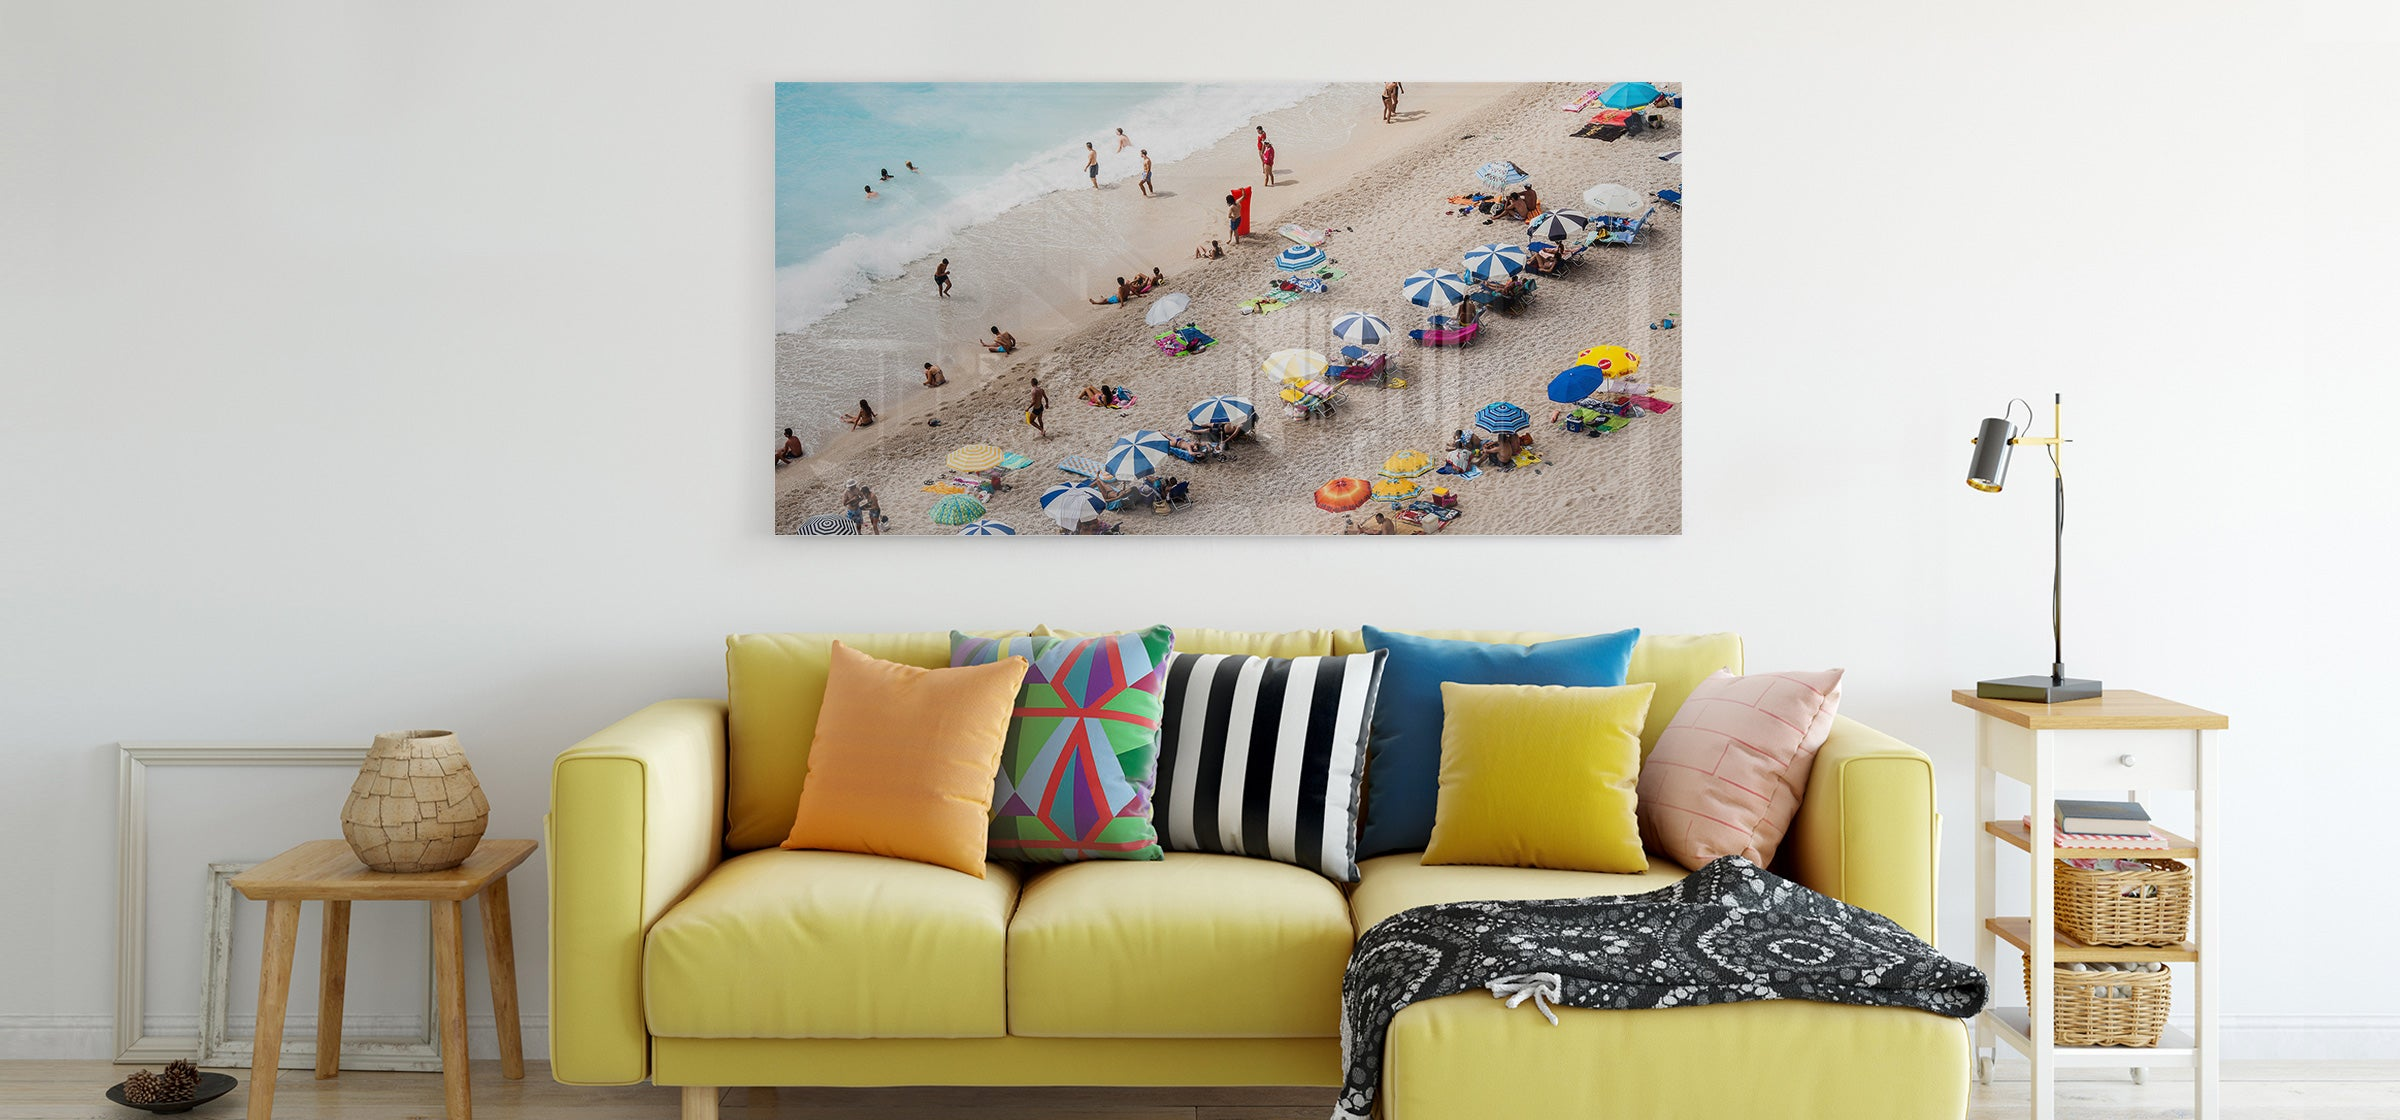 Beach Photo Acrylic Print on Display in Living Room - Printed by Posterjack Canada